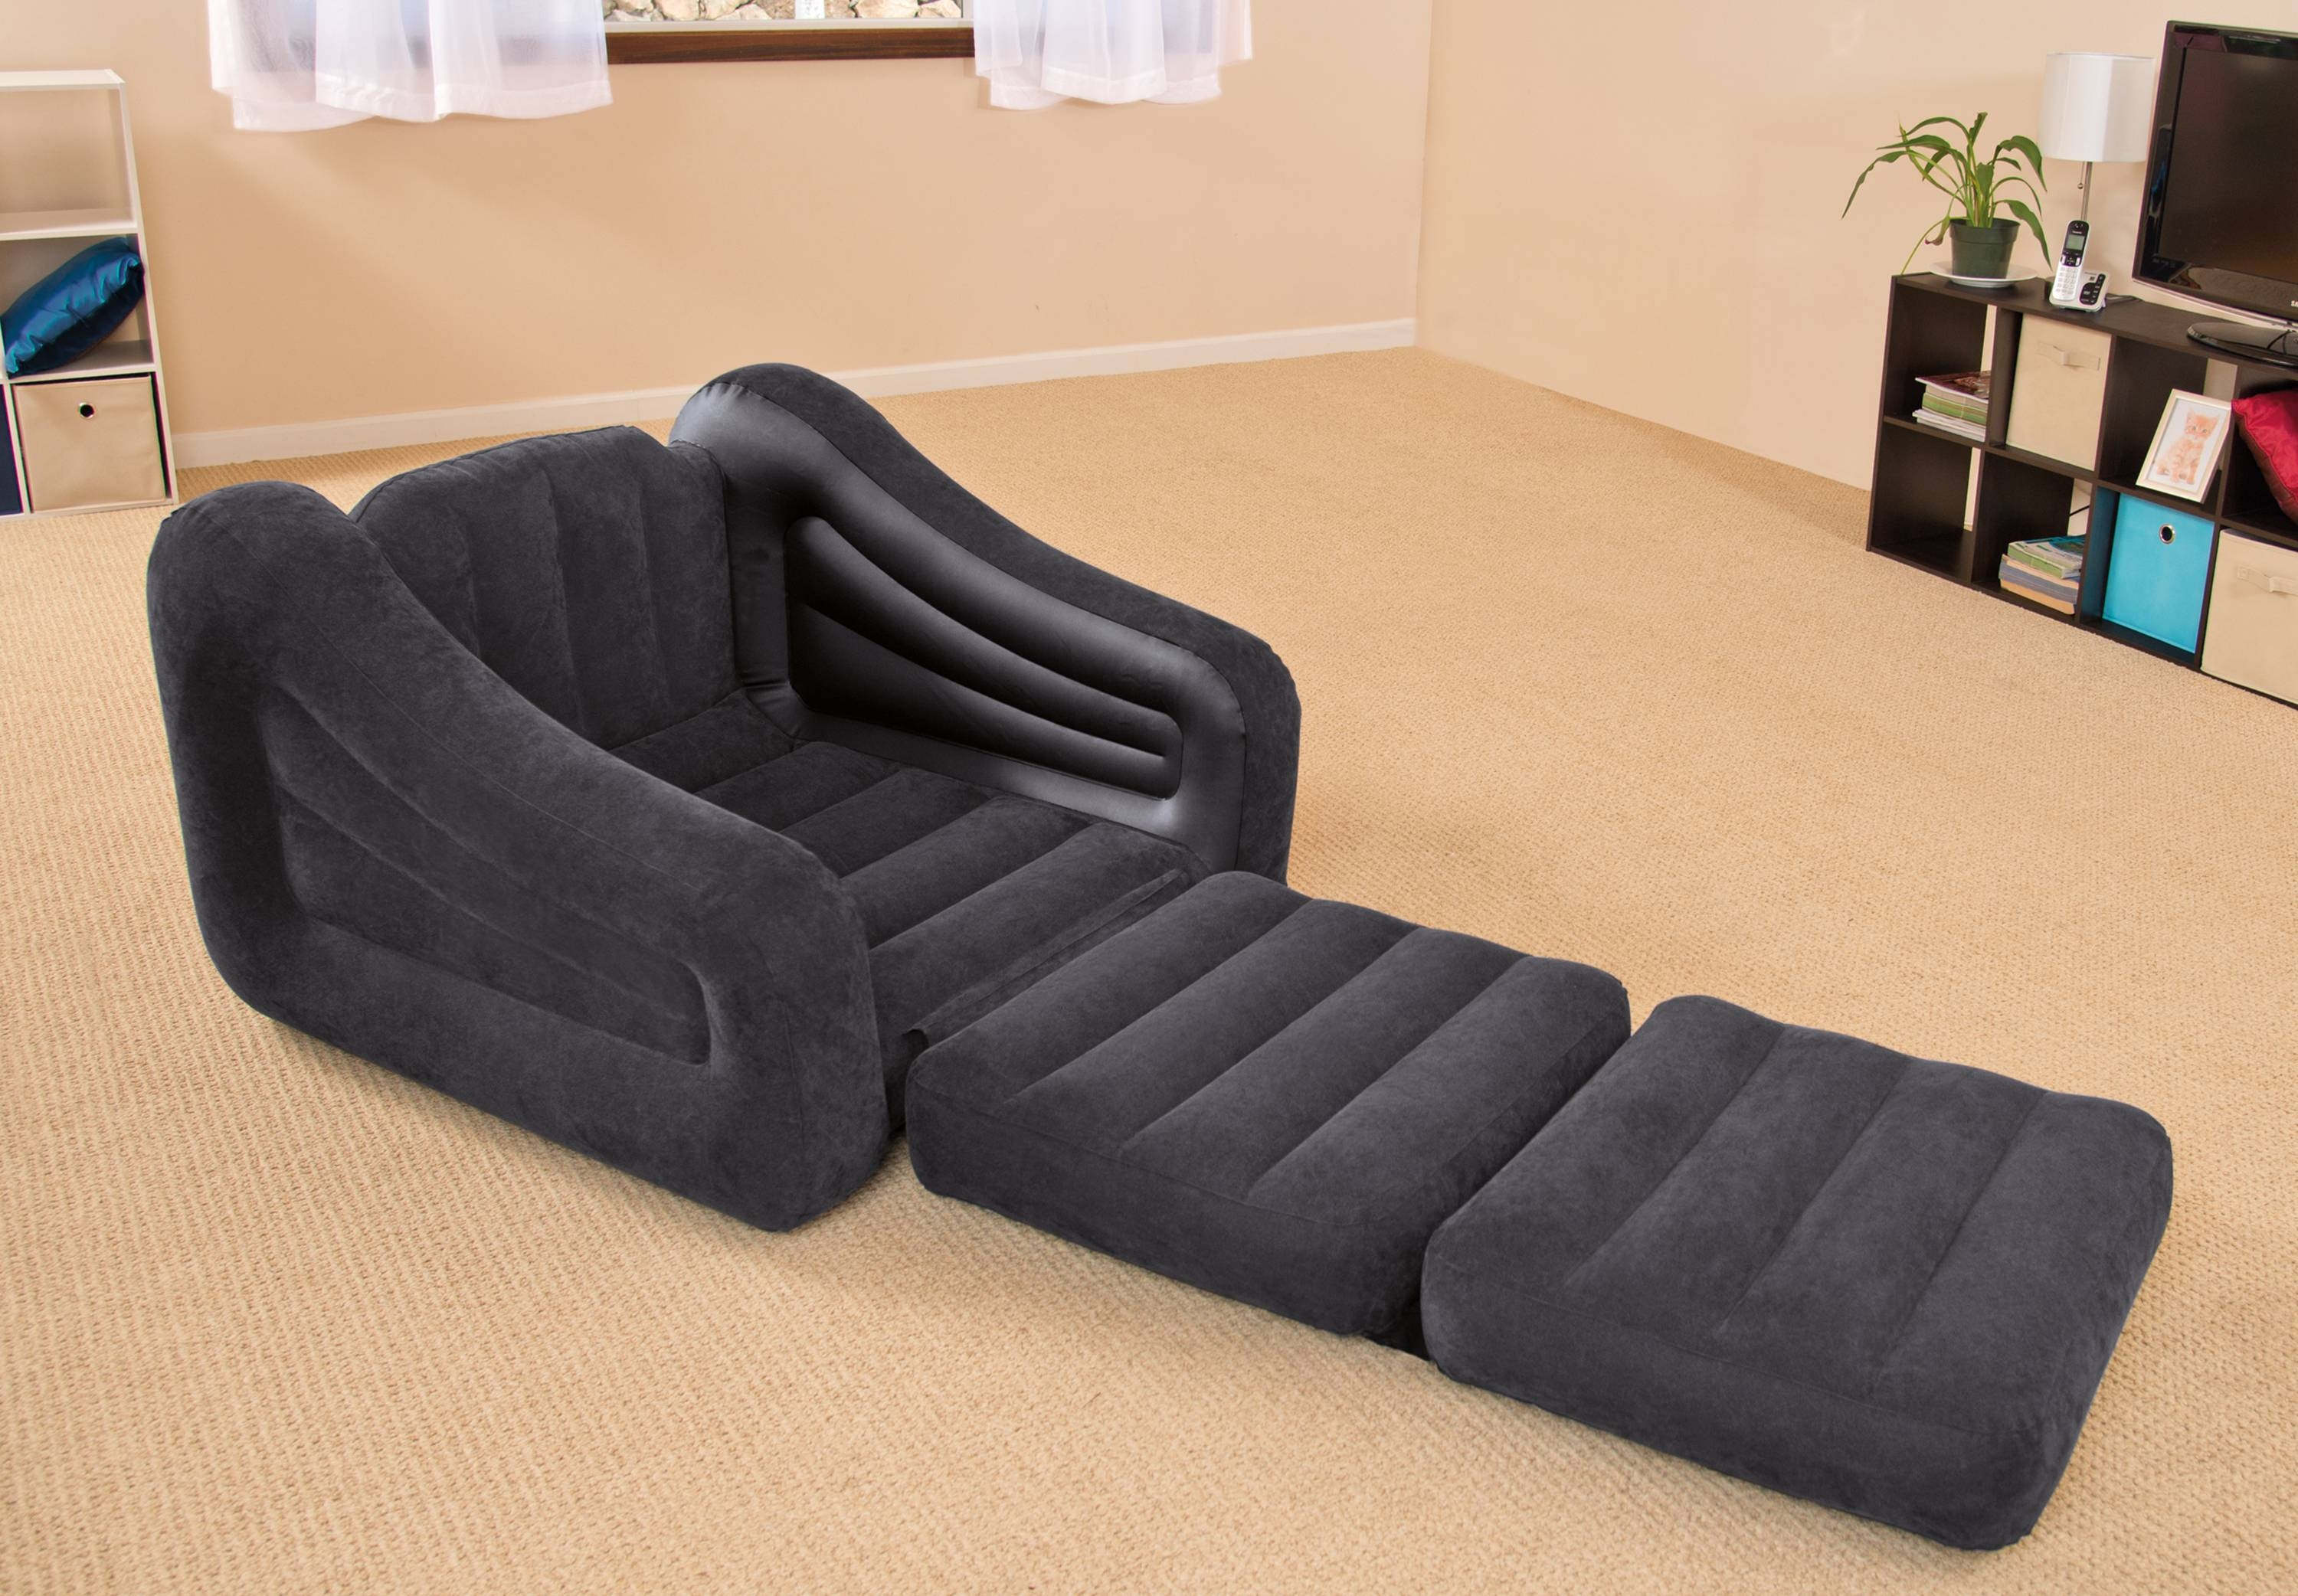 Intex Inflatable Pull-Out Chair - Walmart throughout Intex Inflatable Sofas (Image 9 of 15)